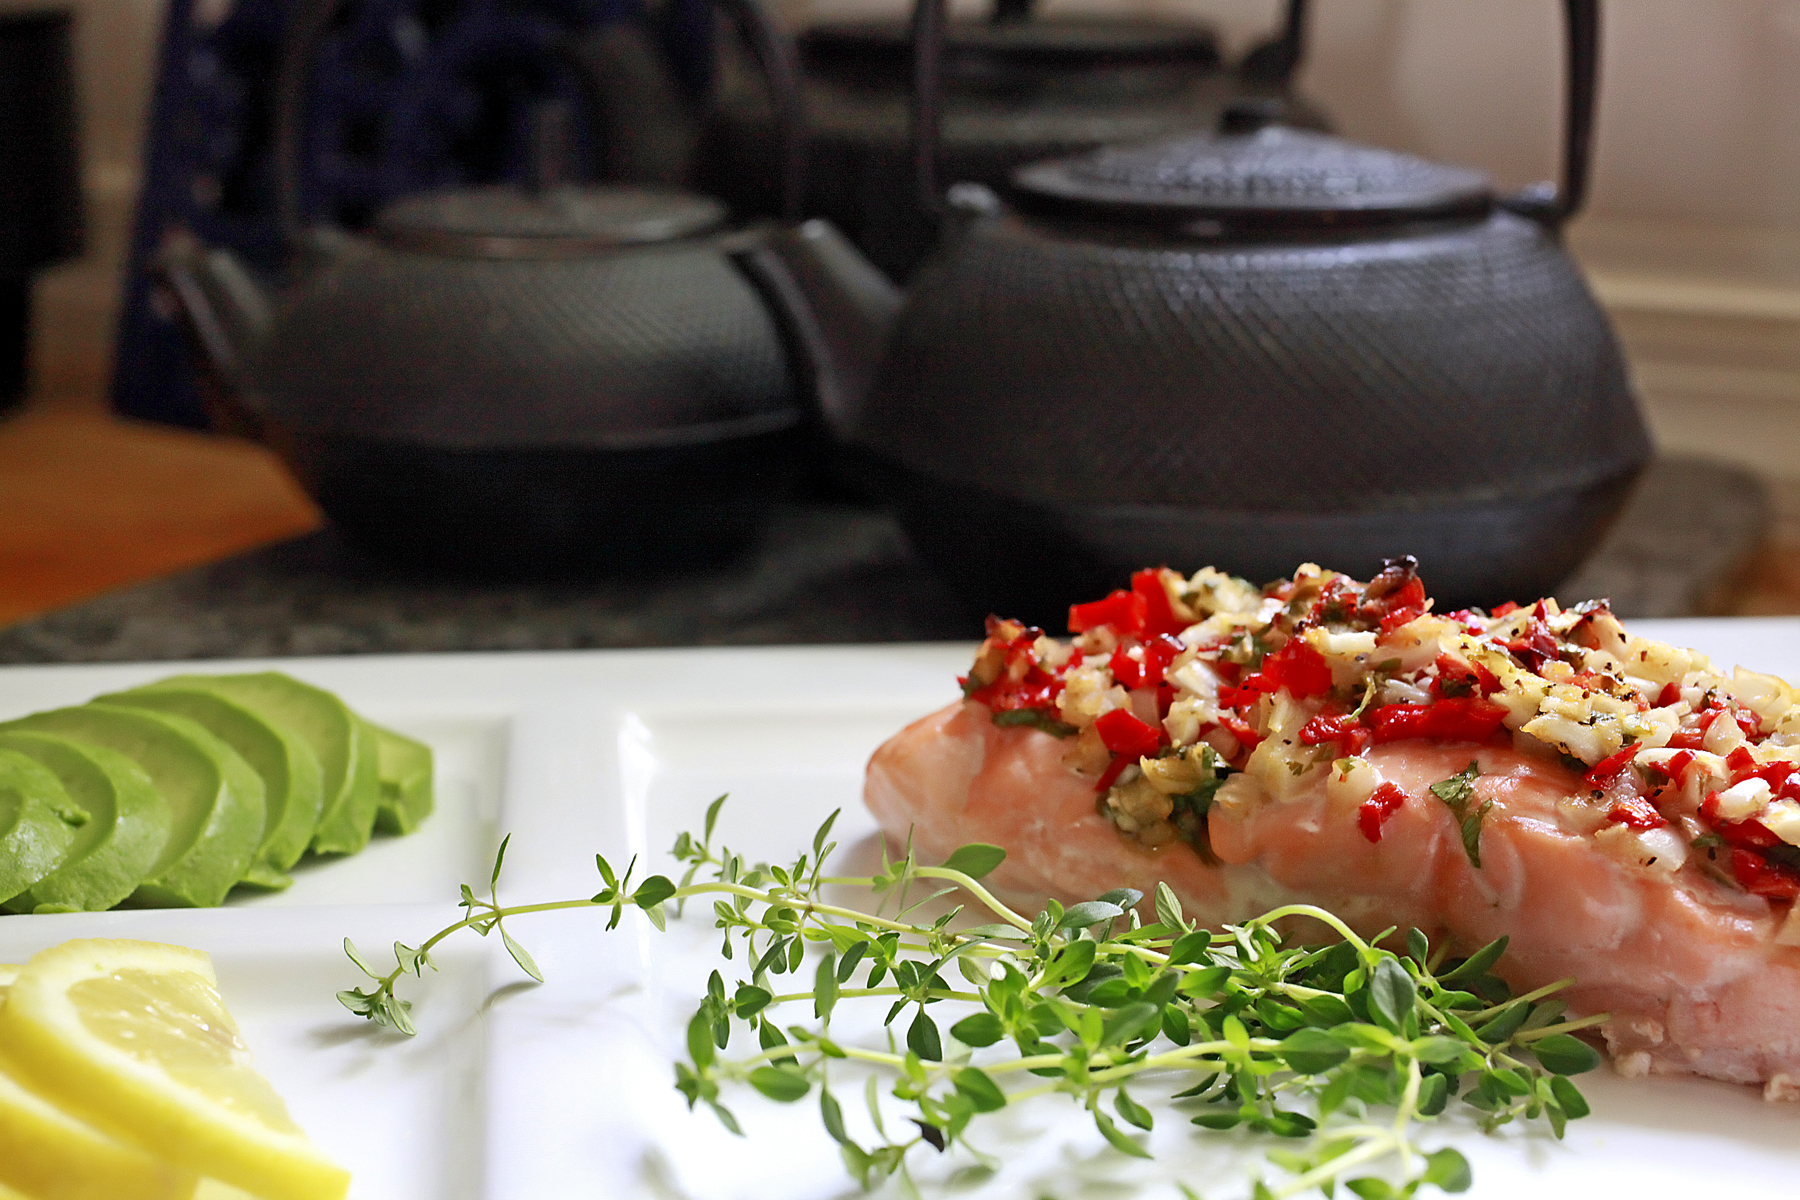 Grilled Salmon with Chili Peppers